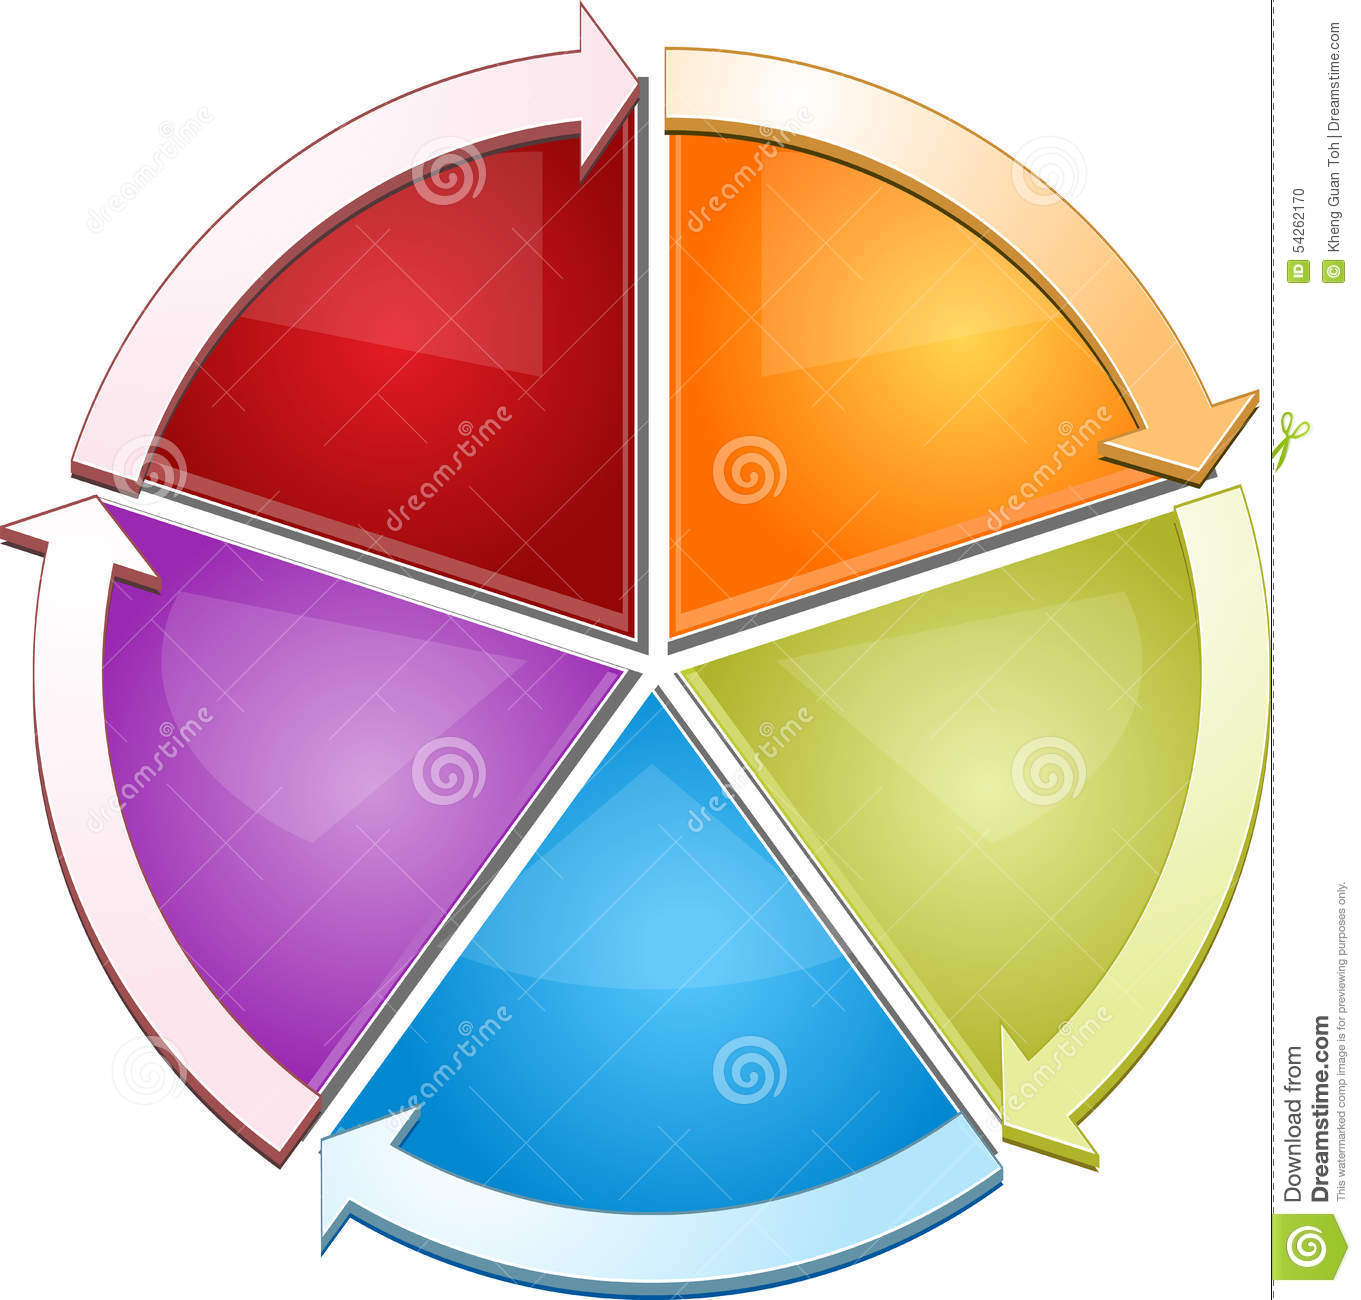 Blank Cycle Business Diagram Illustration Stock ...